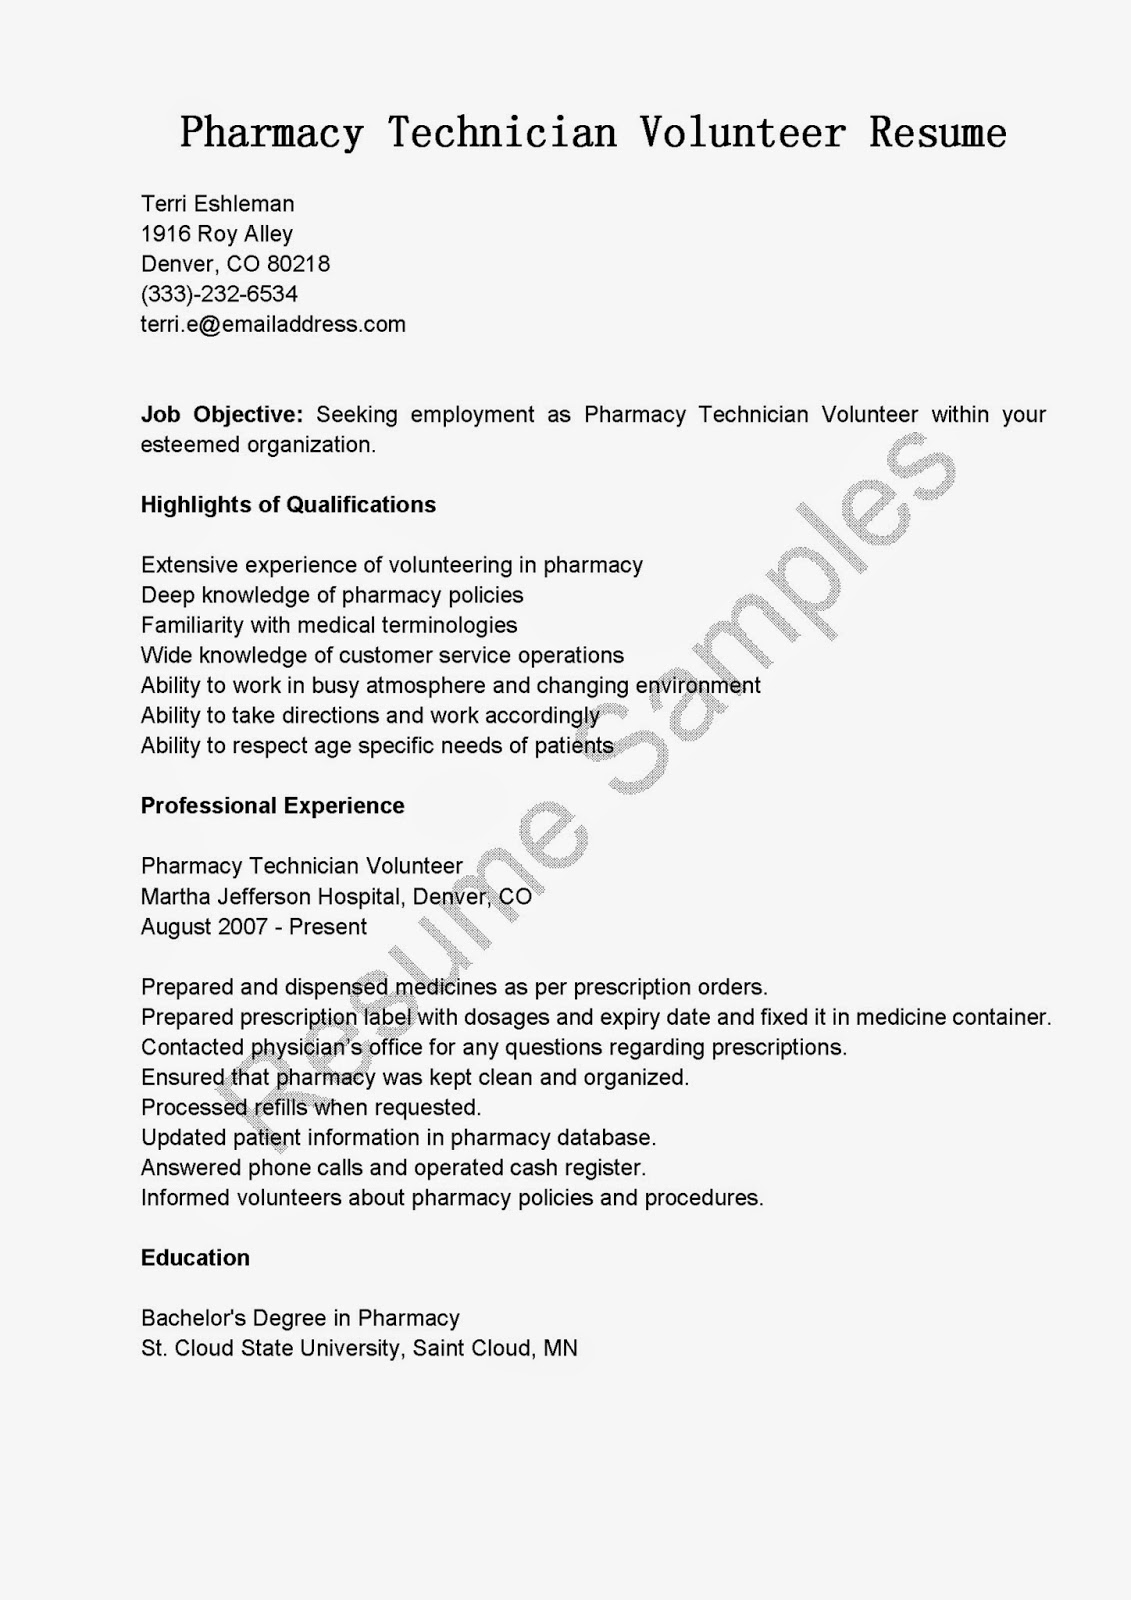 Examples Of Pharmacy Technician Resumes Resume Samples Pharmacy Technician Volunteer Resume Sample